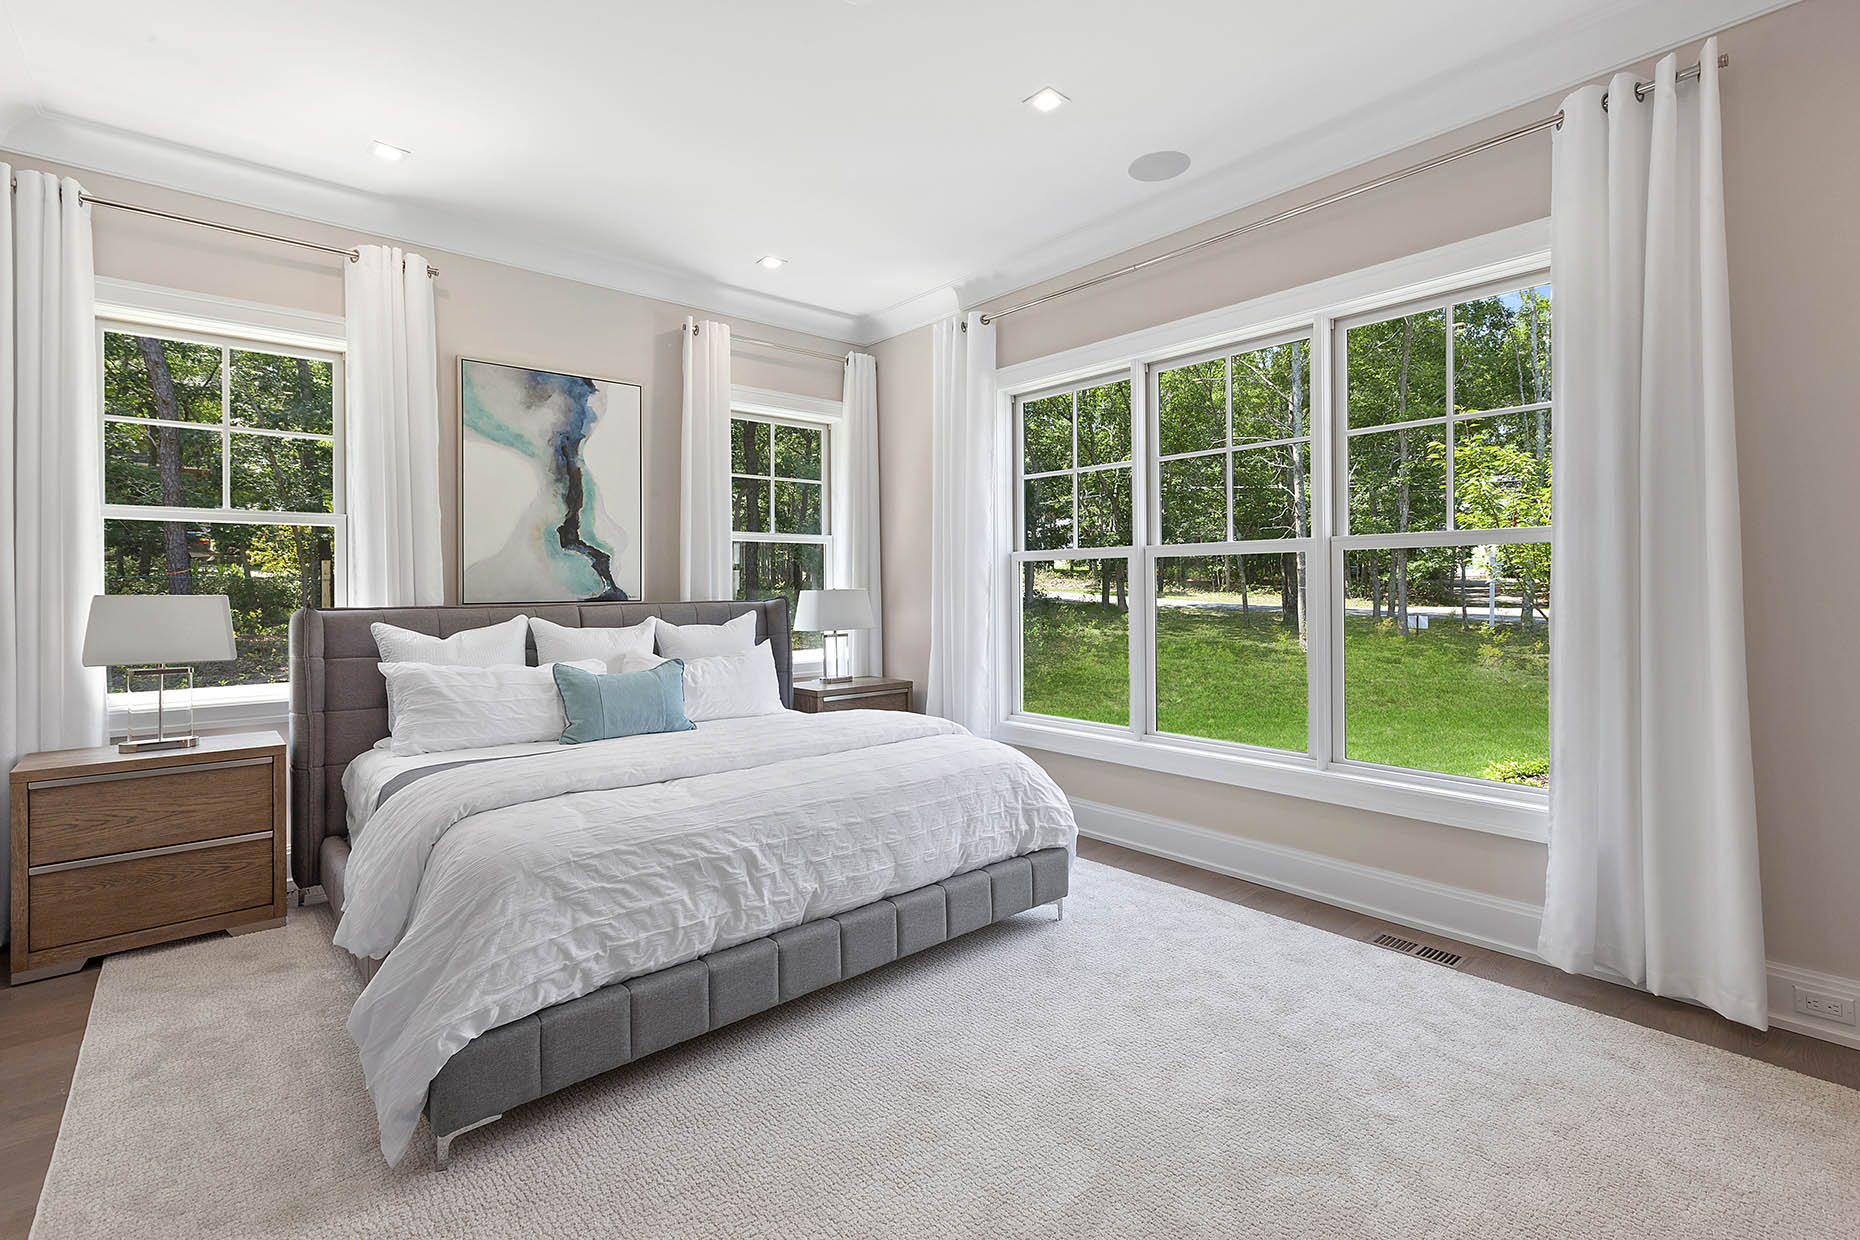 249 Topping Path, Sagaponack - Guest Bedroom